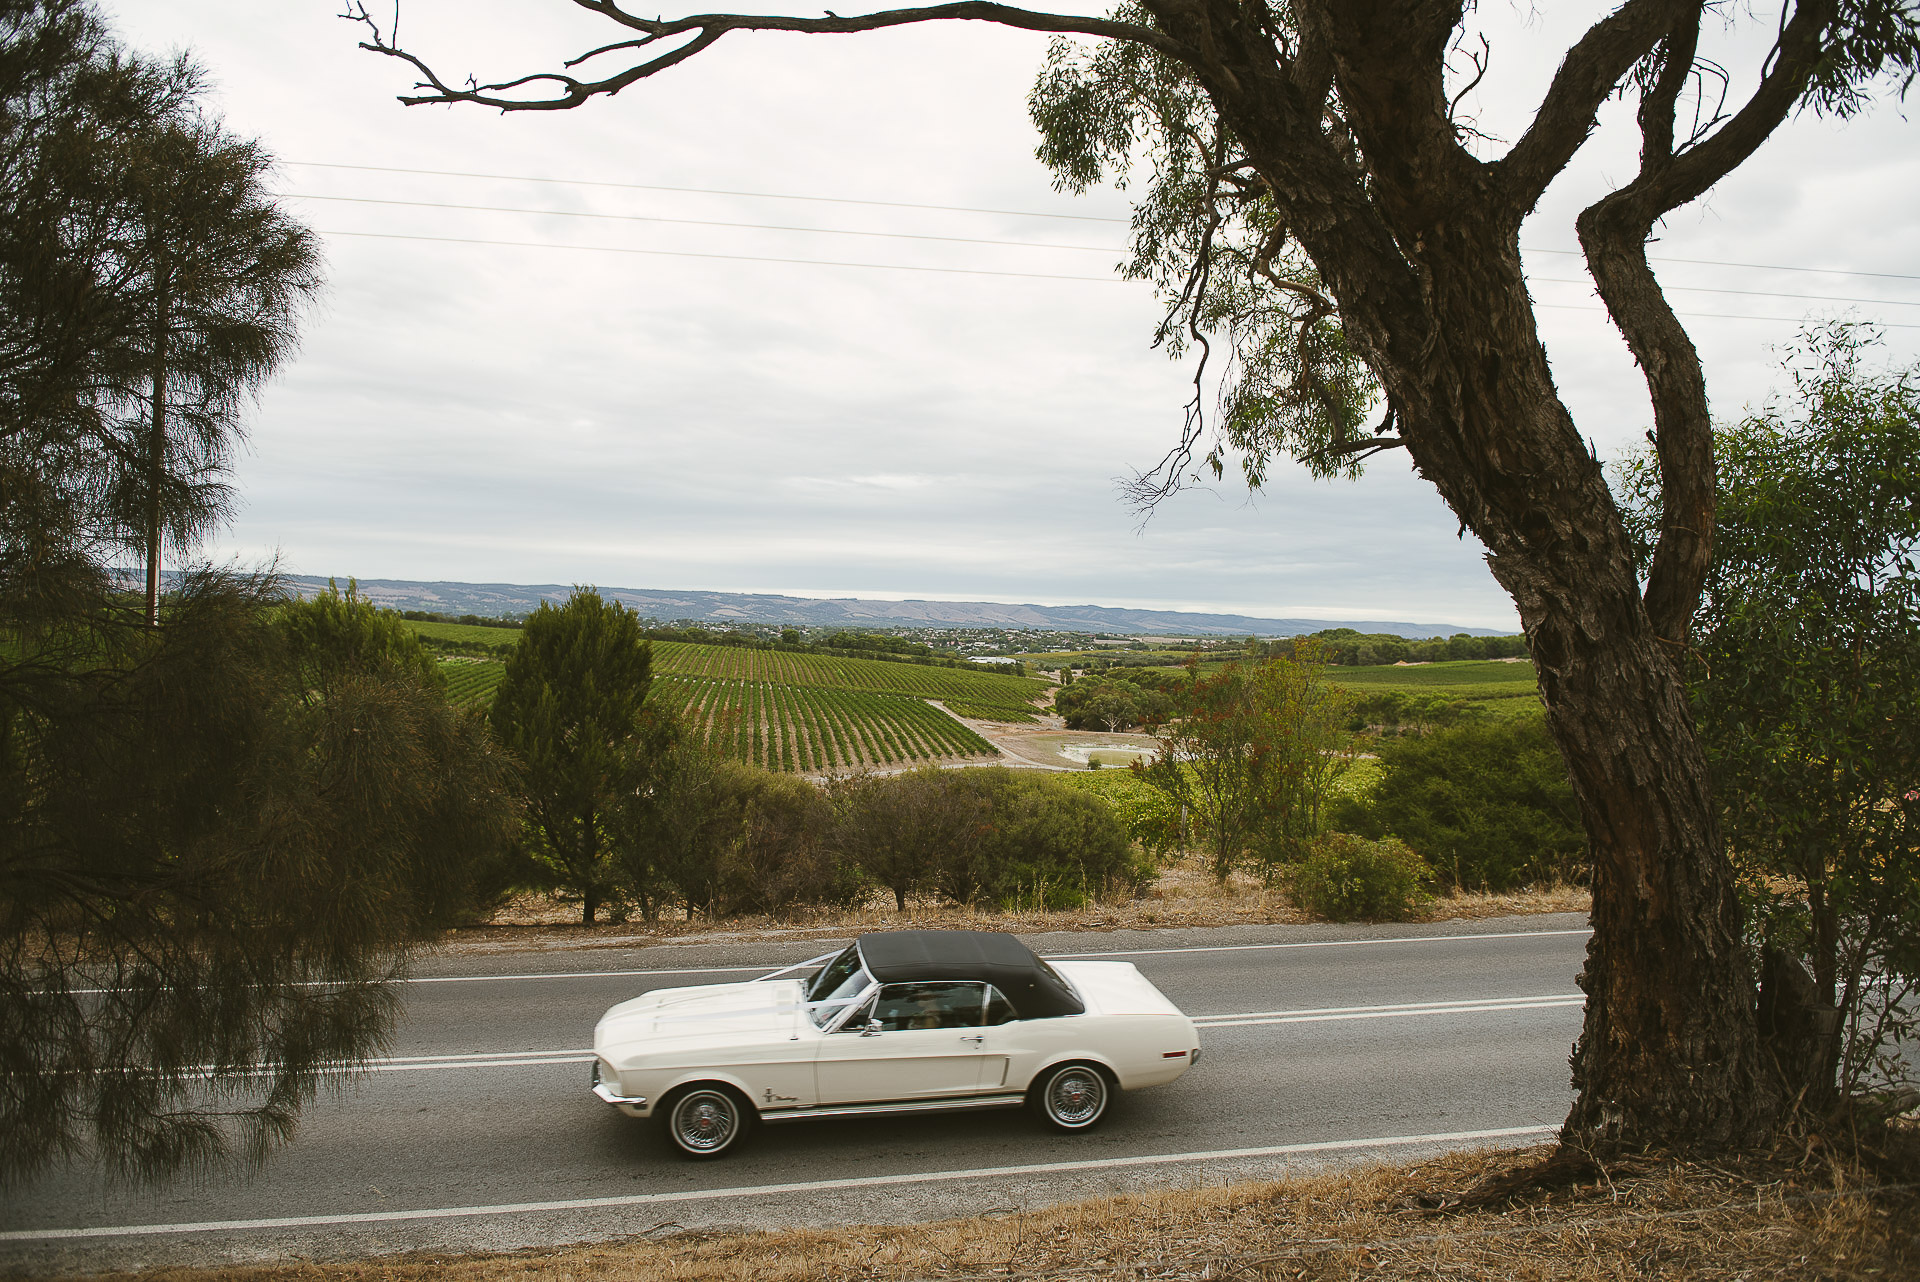 white mustang wedding car arriving with bride at beach road wines in mclaren vale